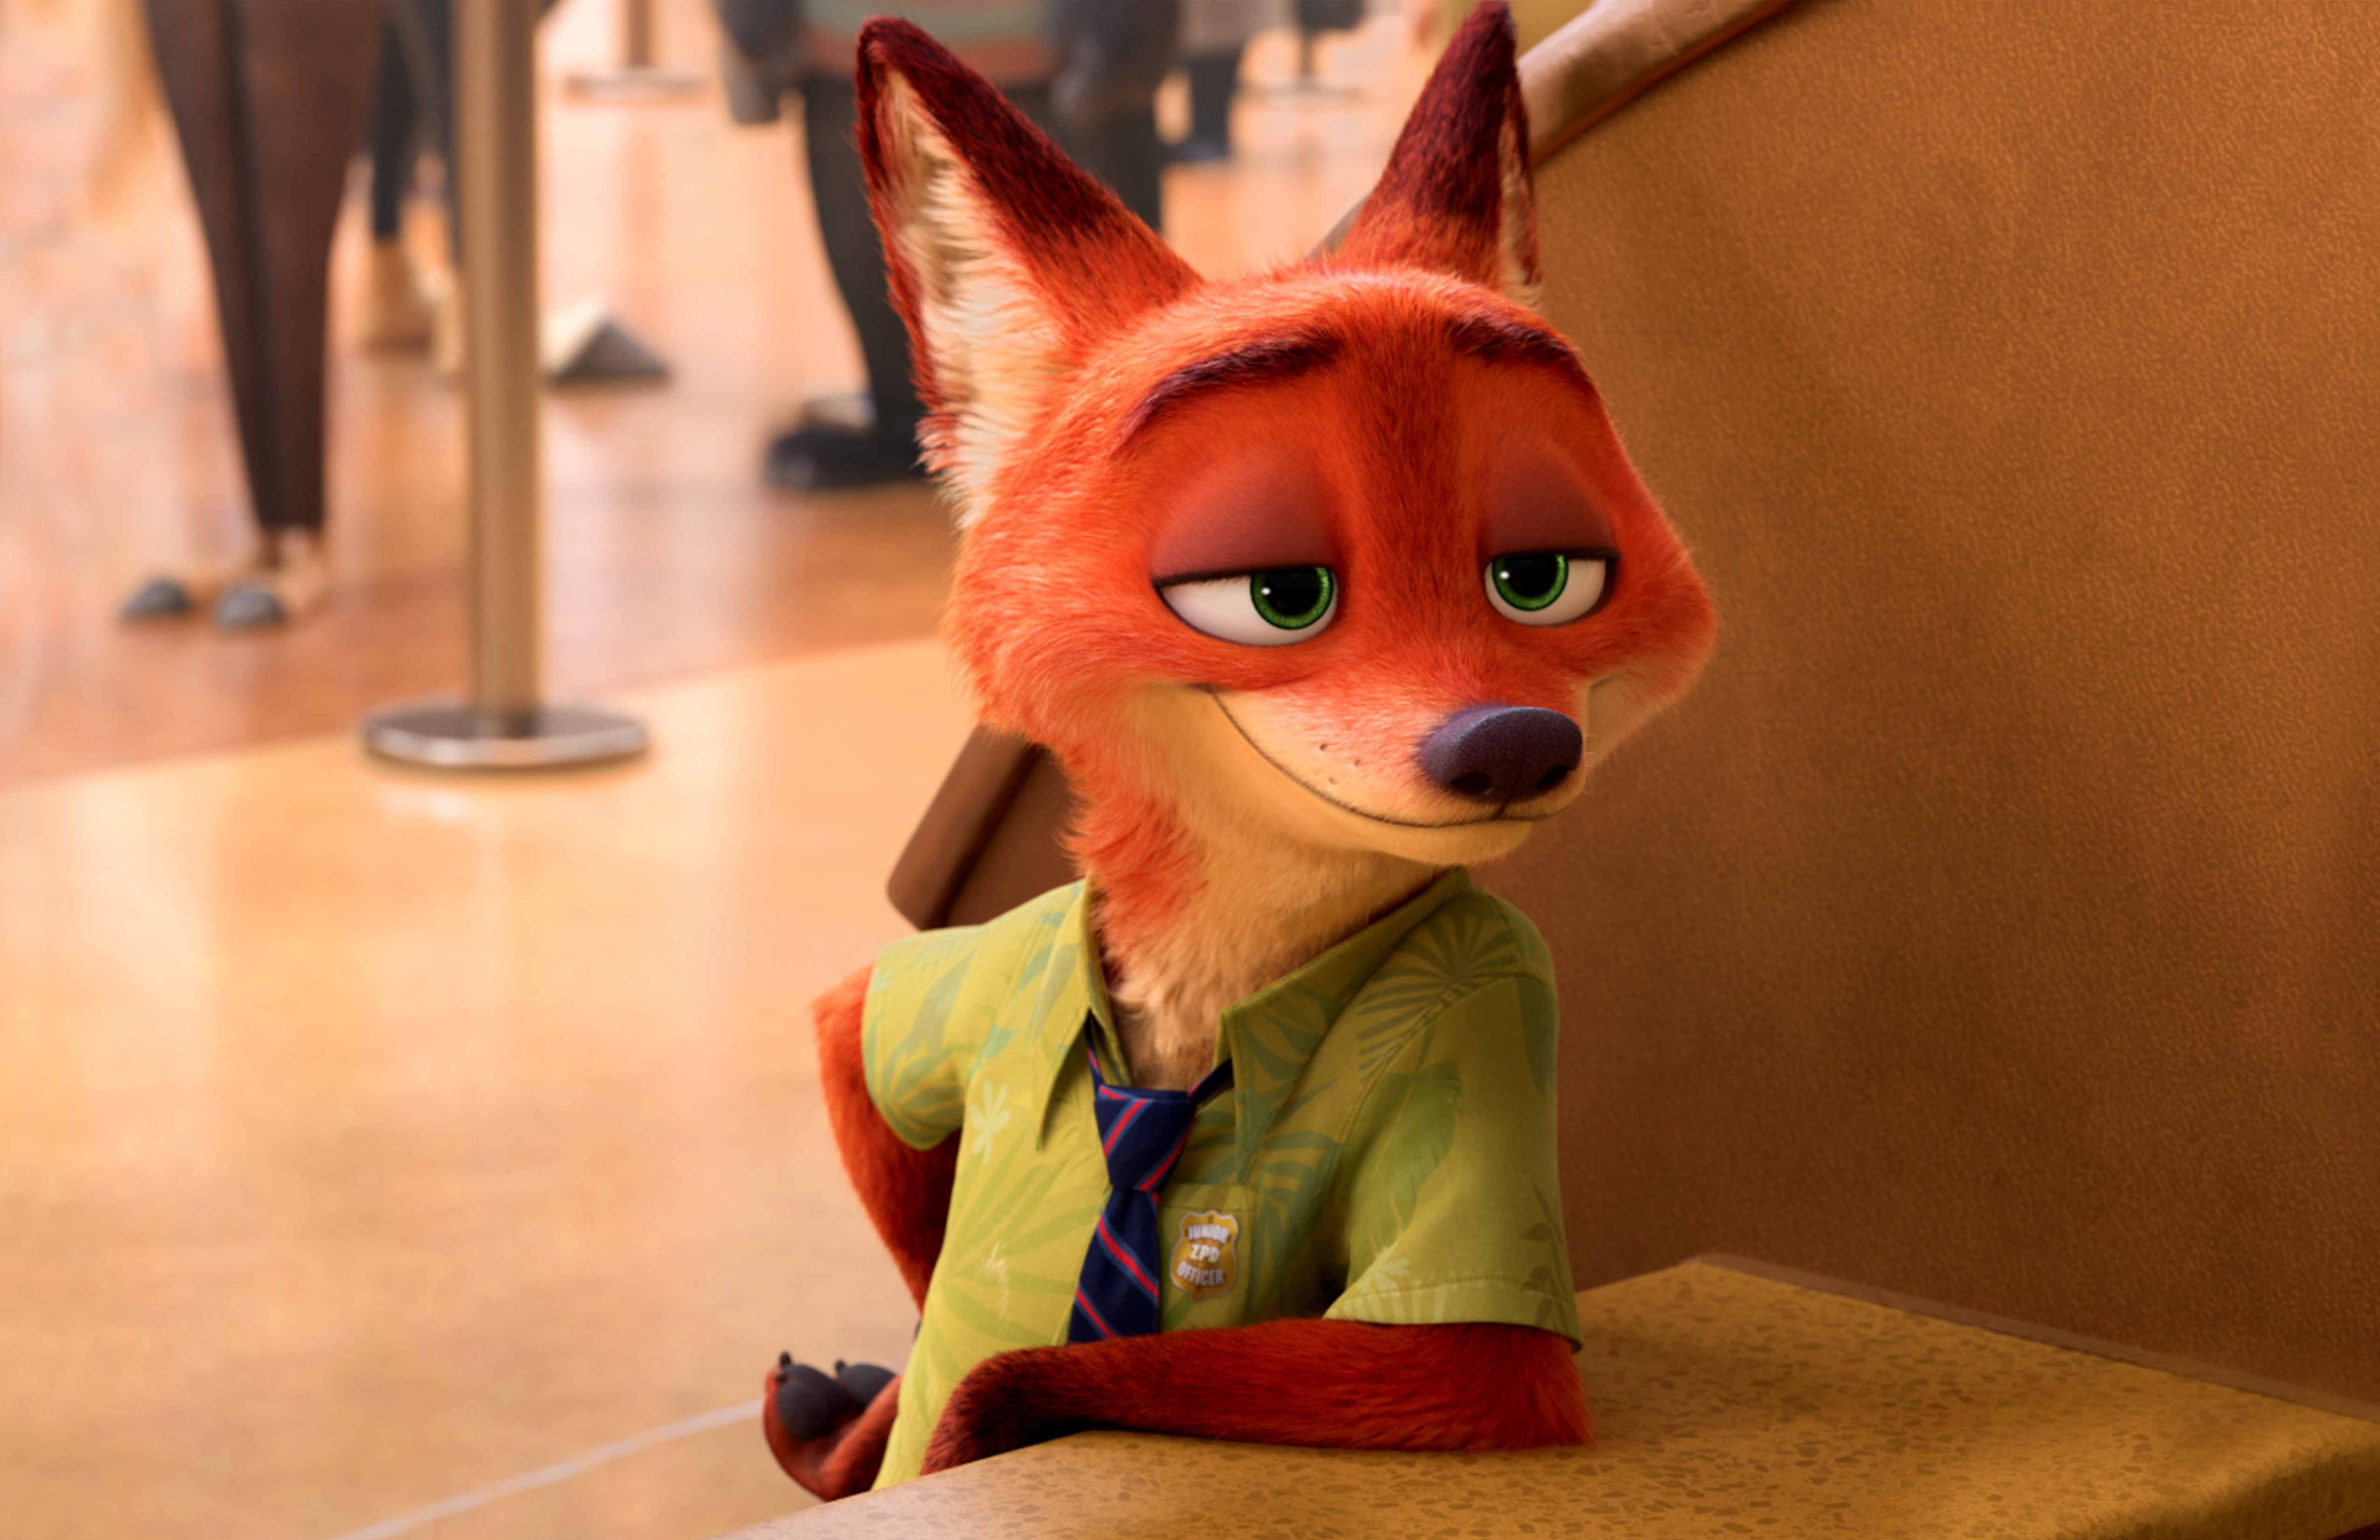 Zootopia Wallpapers, Pictures, Images